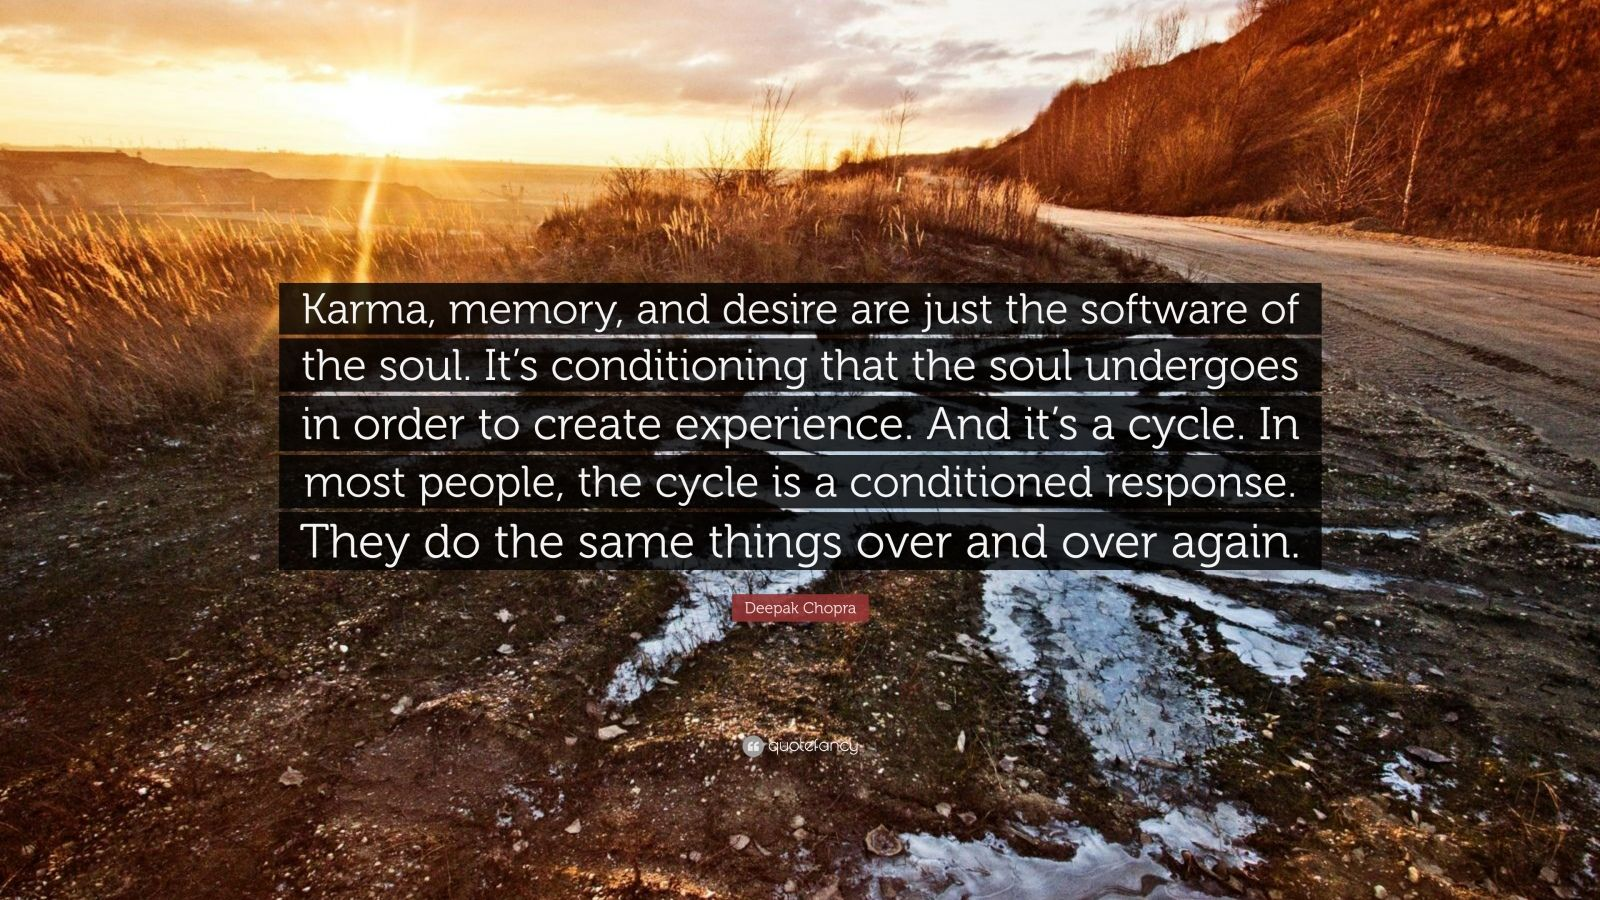 """Deepak Chopra Quote: """"Karma, memory, and desire are just the software of the soul. It's conditioning that the soul undergoes in order to create experience. And it's a cycle. In most people, the cycle is a conditioned response. They do the same things over and over again."""""""